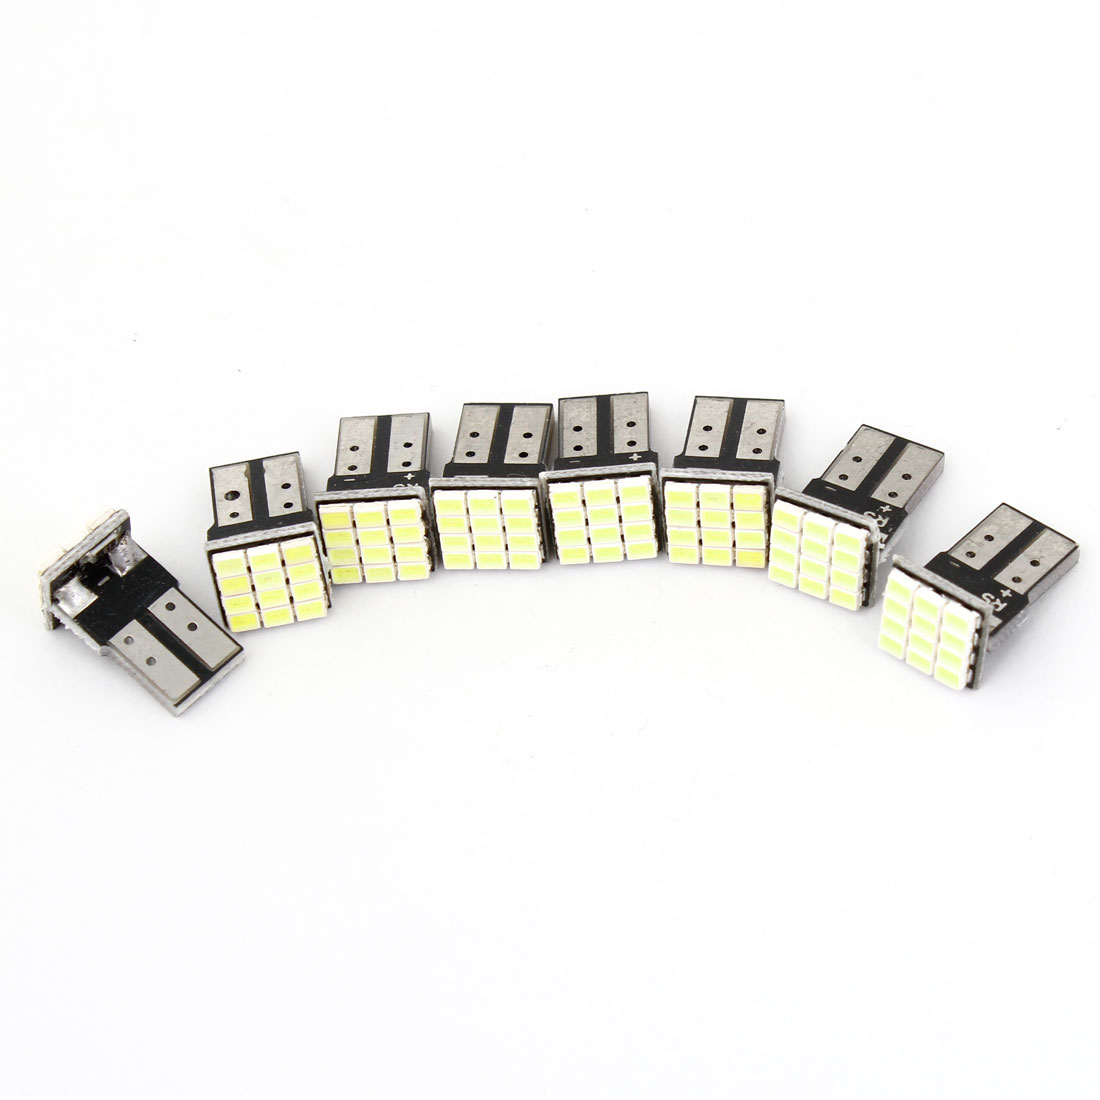 8PCS T10 White 12LED 1206 SMD Dashboard Turn Signal Light Lamp Bulb for Car